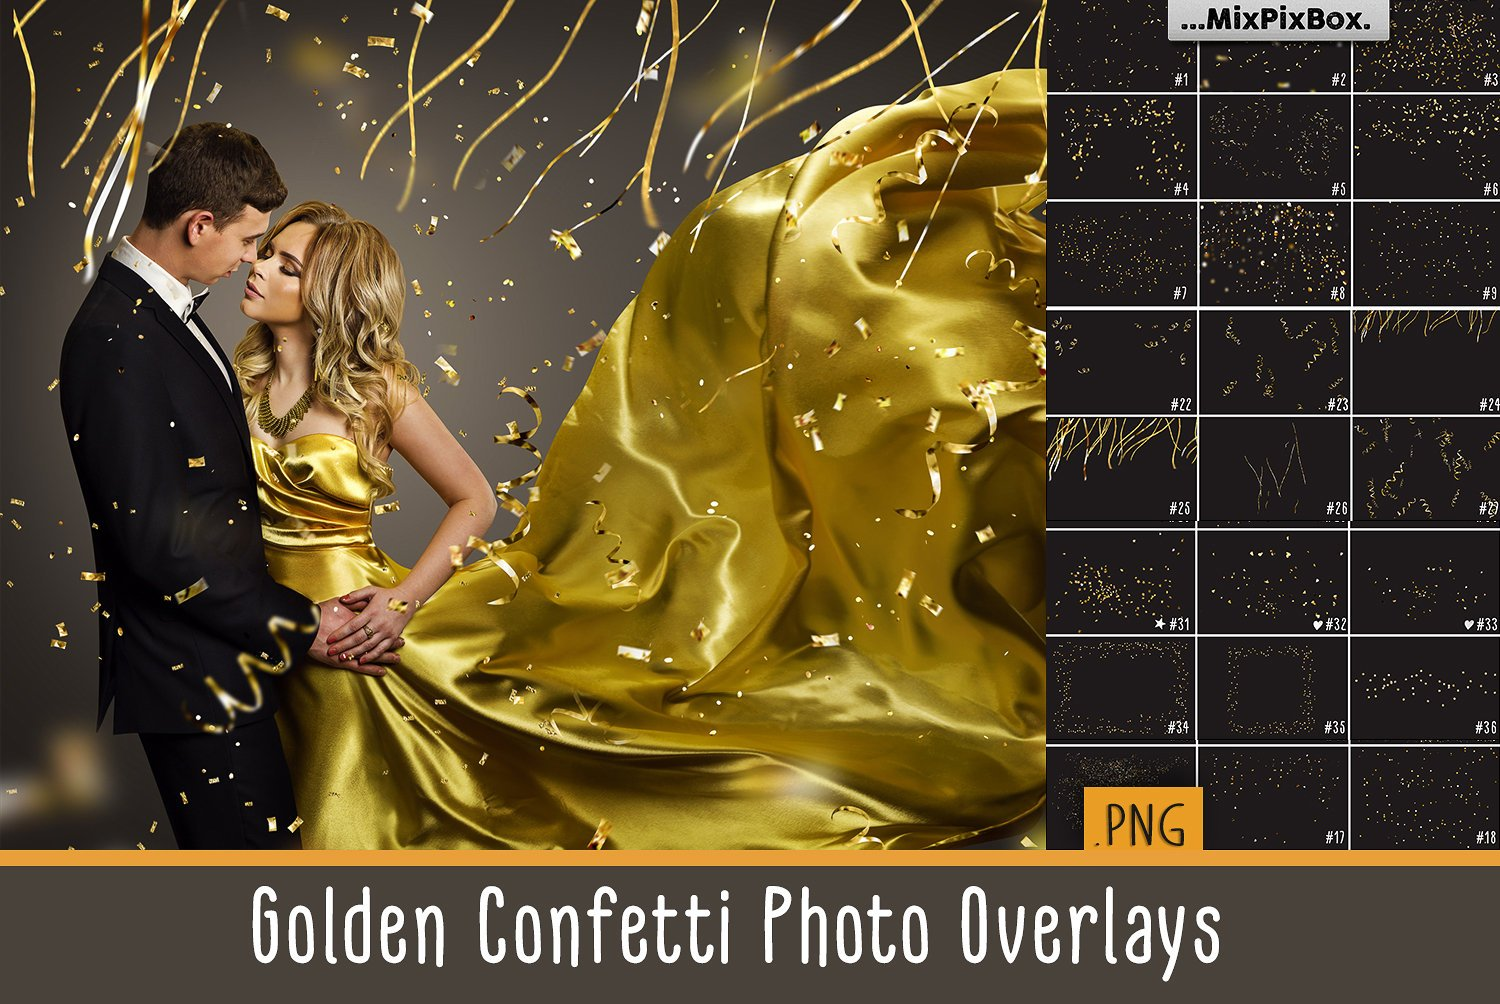 Golden Confetti overlays